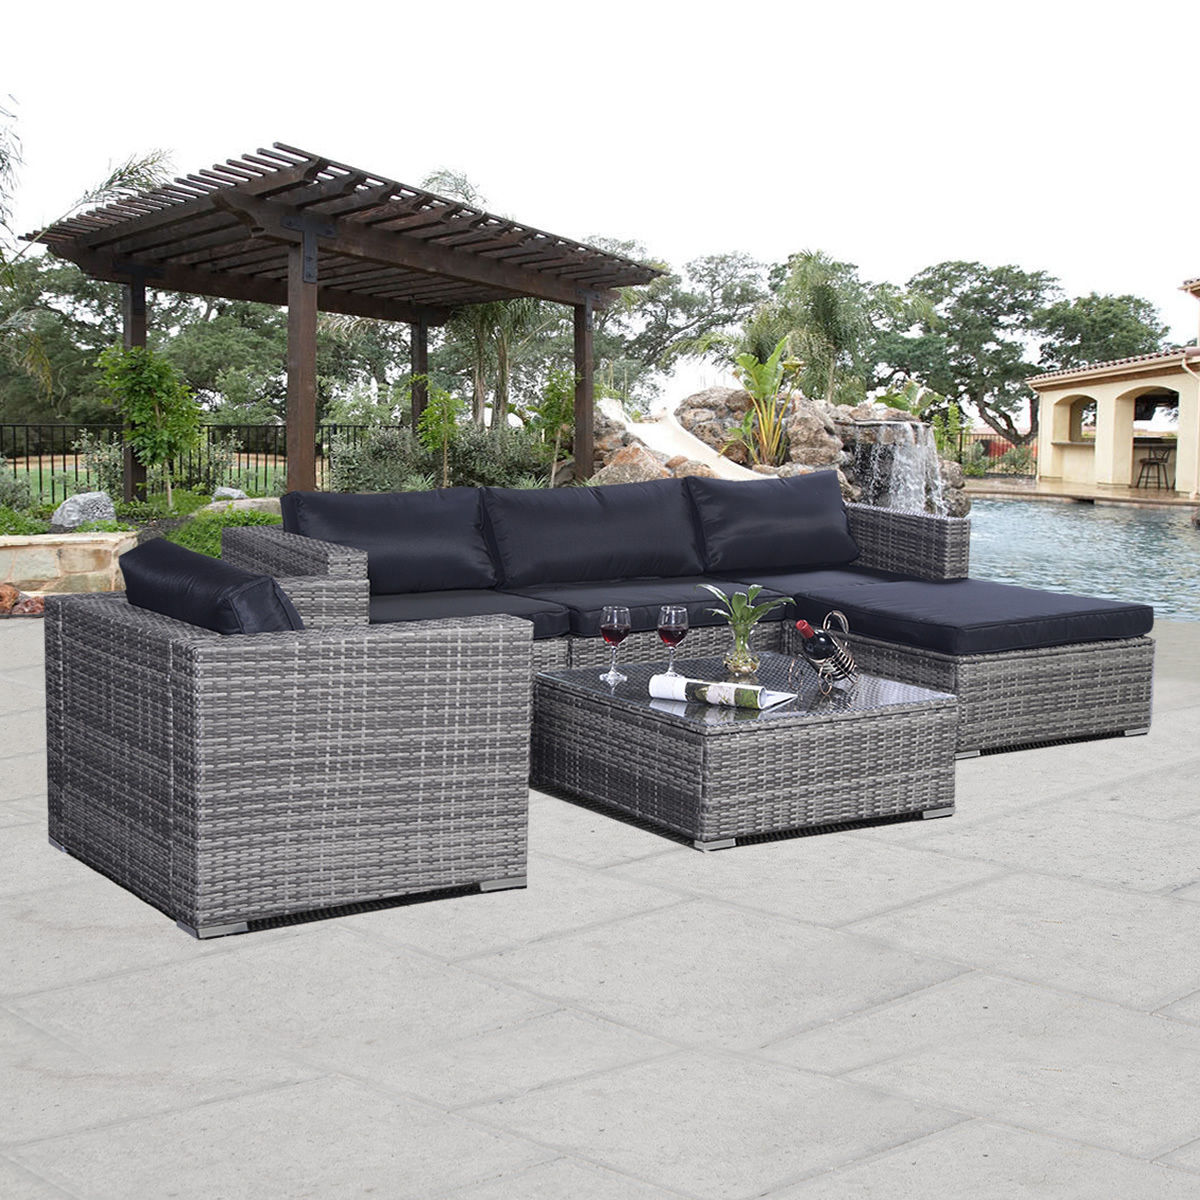 Costway 6pc Patio Sofa Furniture Set Pe Rattan Couch Outdoor Cushioned Gray